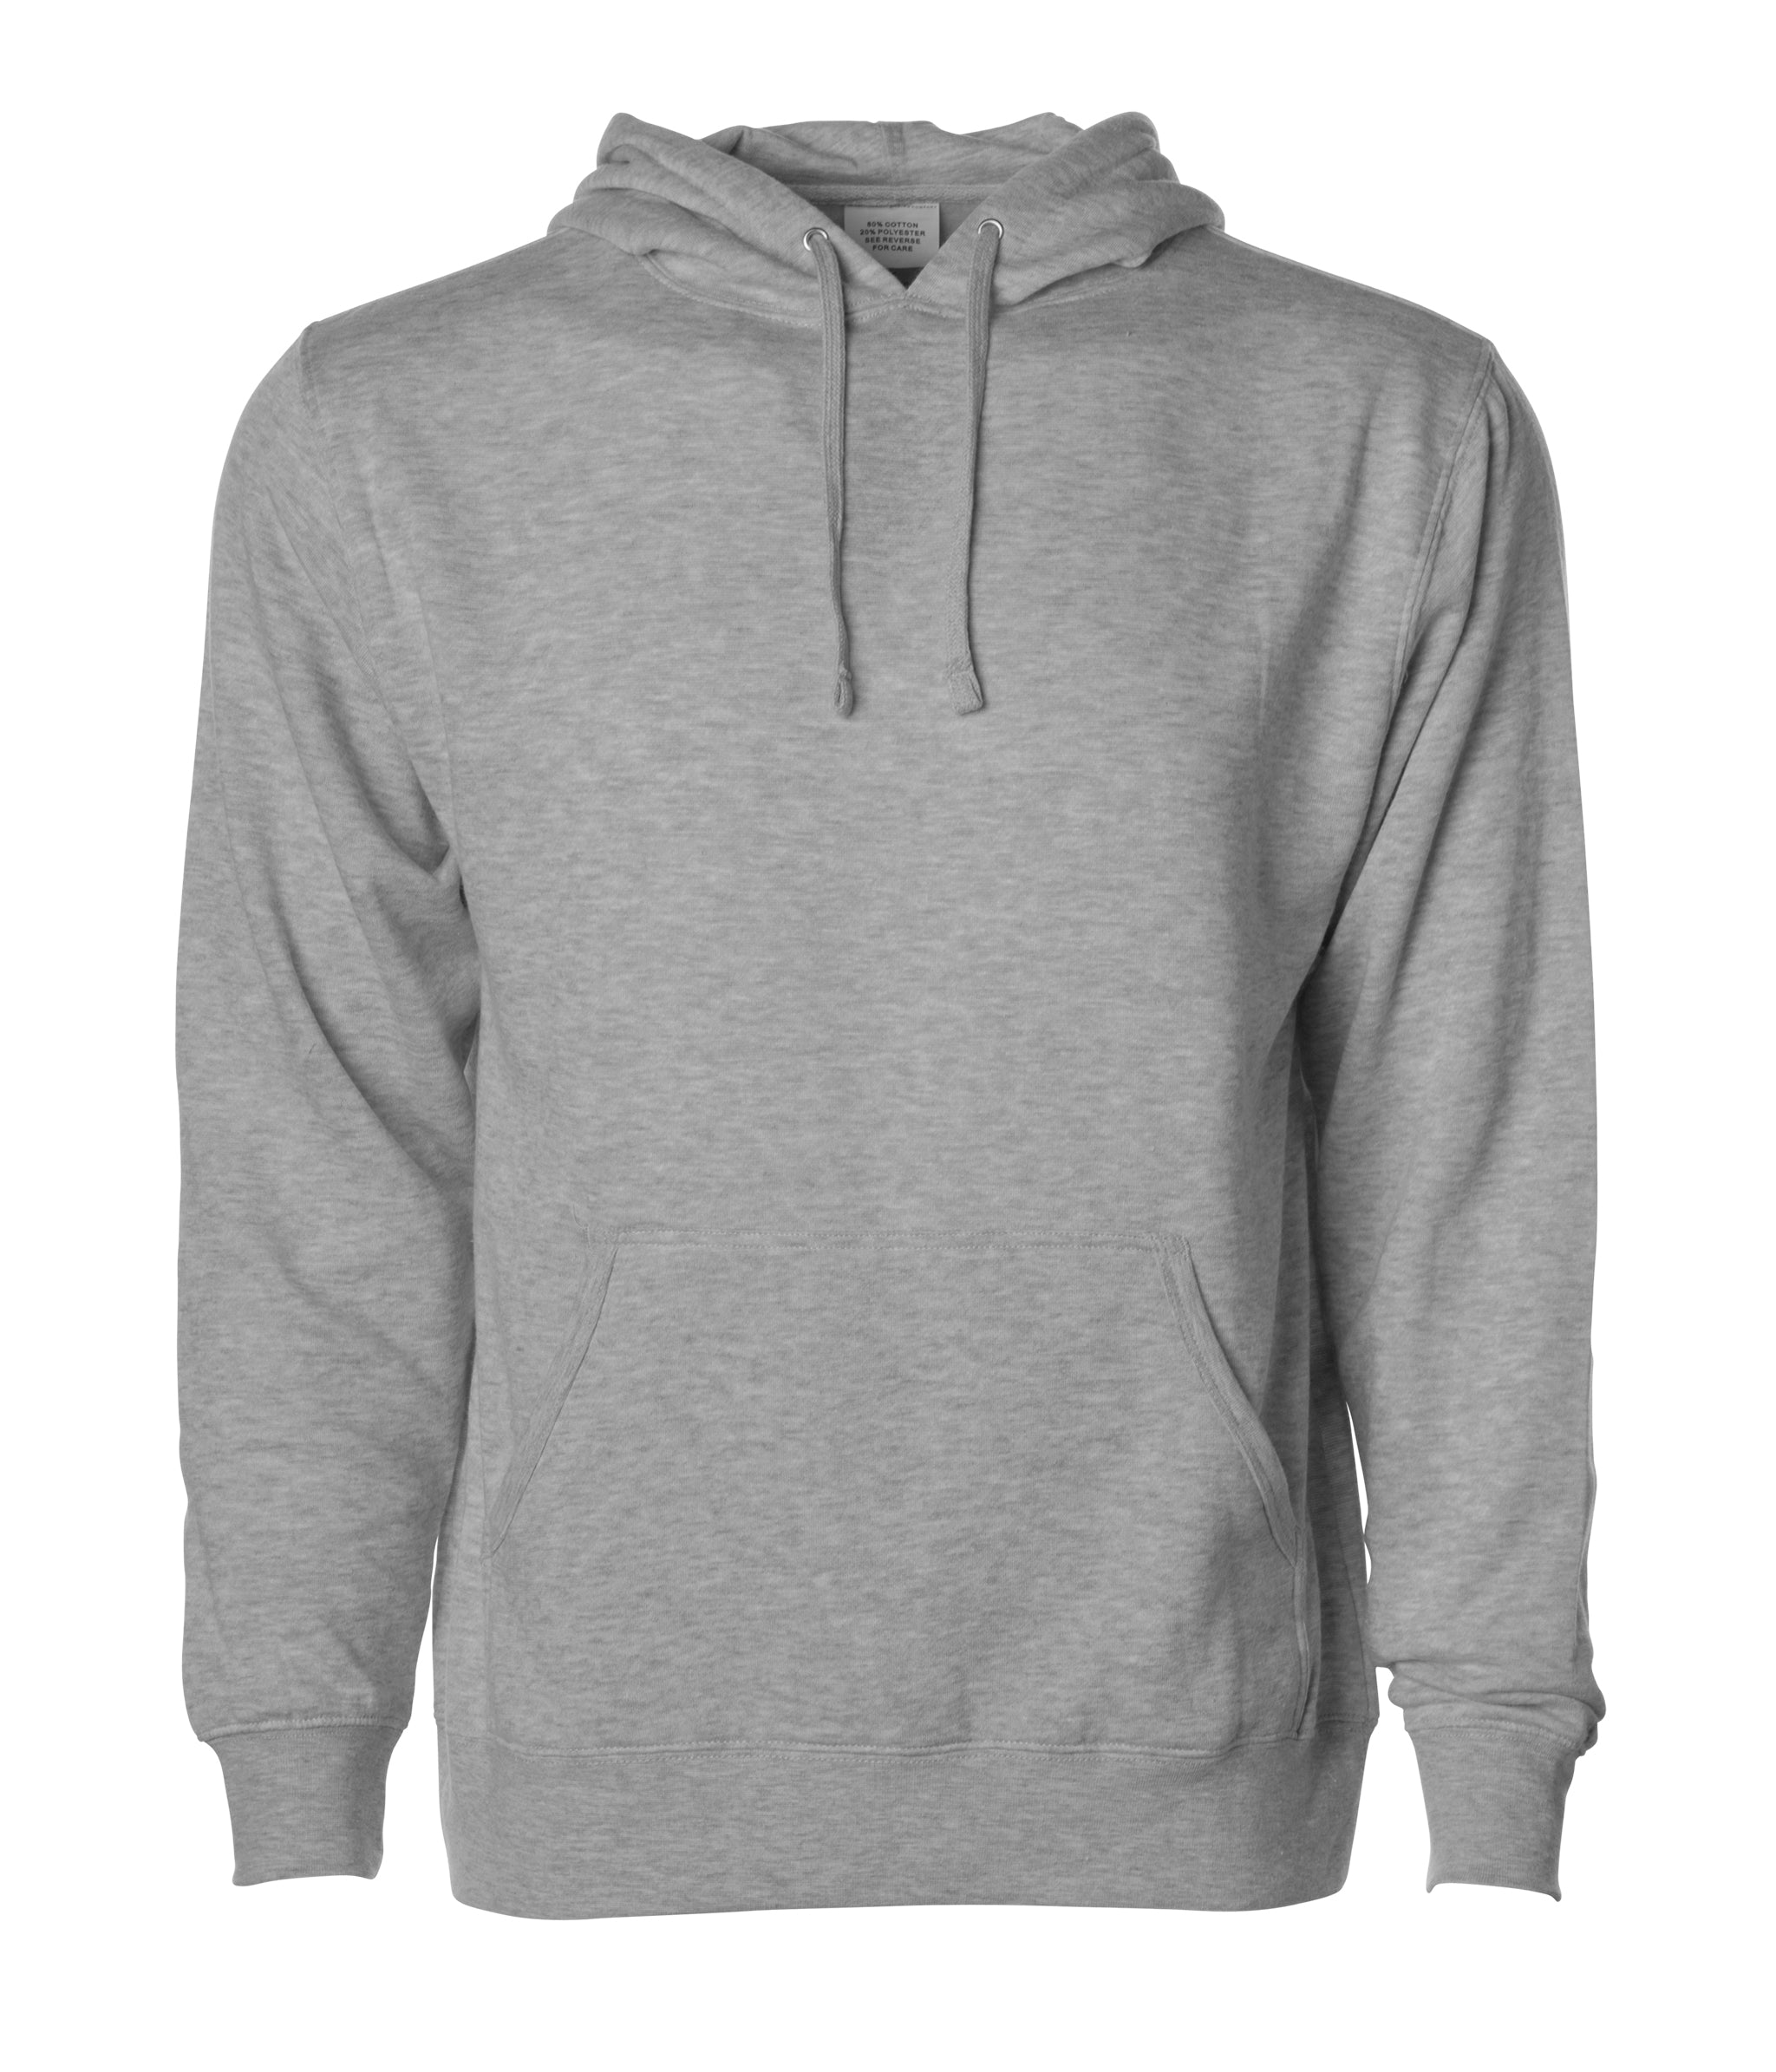 COTTON// POLY JERSEY HOODIE XS-3XL PULLOVER MEN/'S LIGHTWEIGHT HOODED T-SHIRT